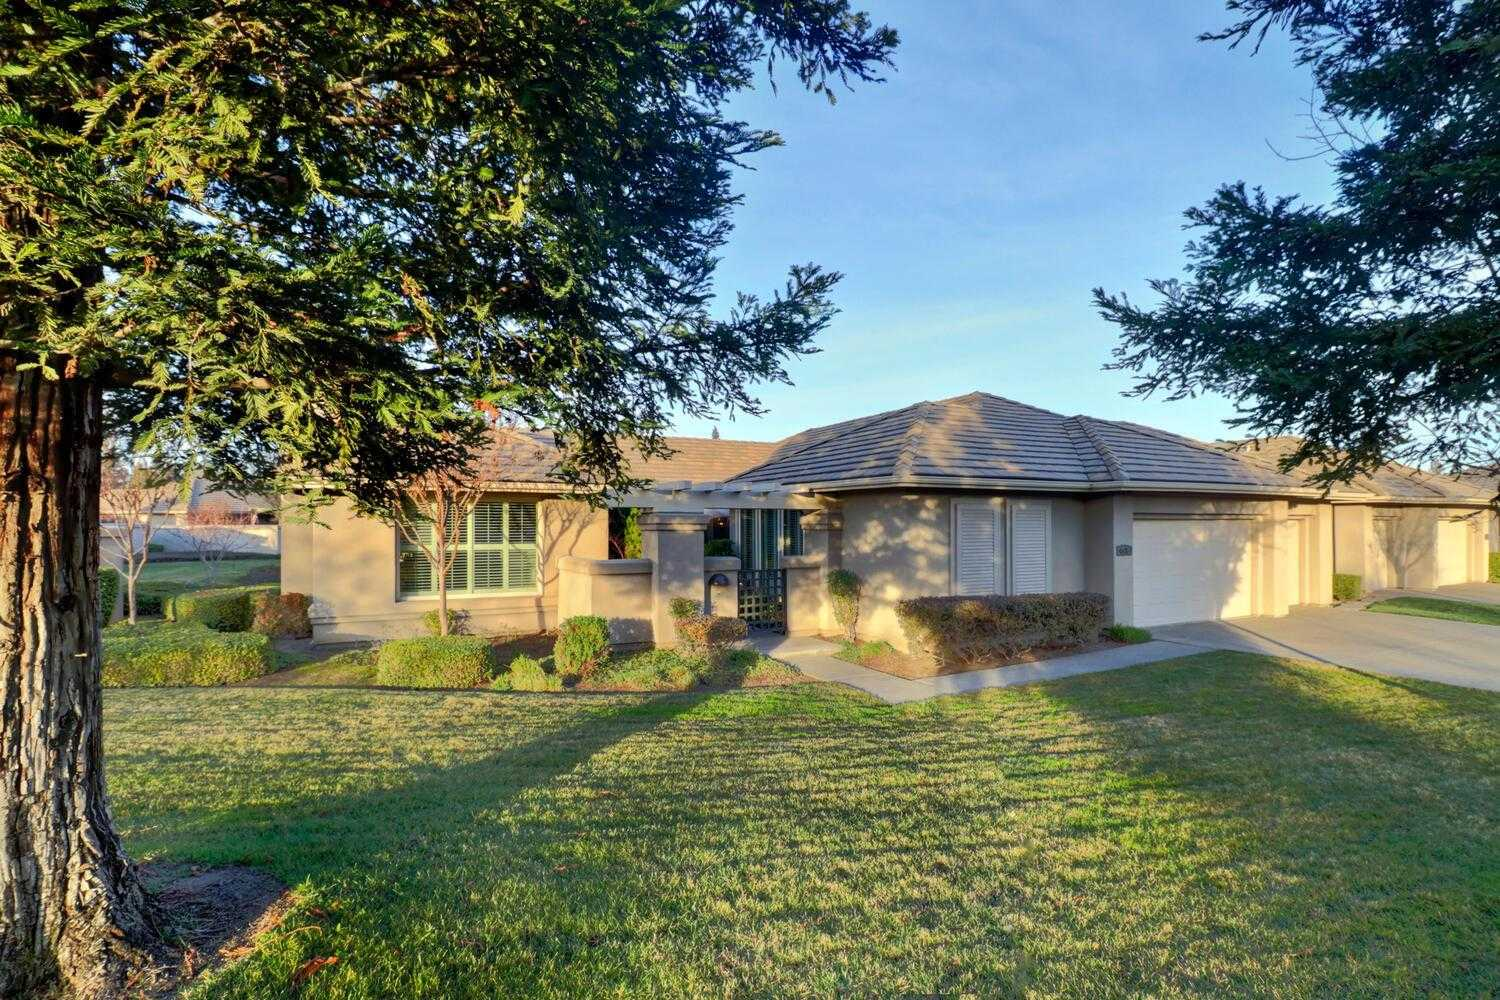 $721,000 - 3Br/3Ba -  for Sale in The Retreat, Elk Grove